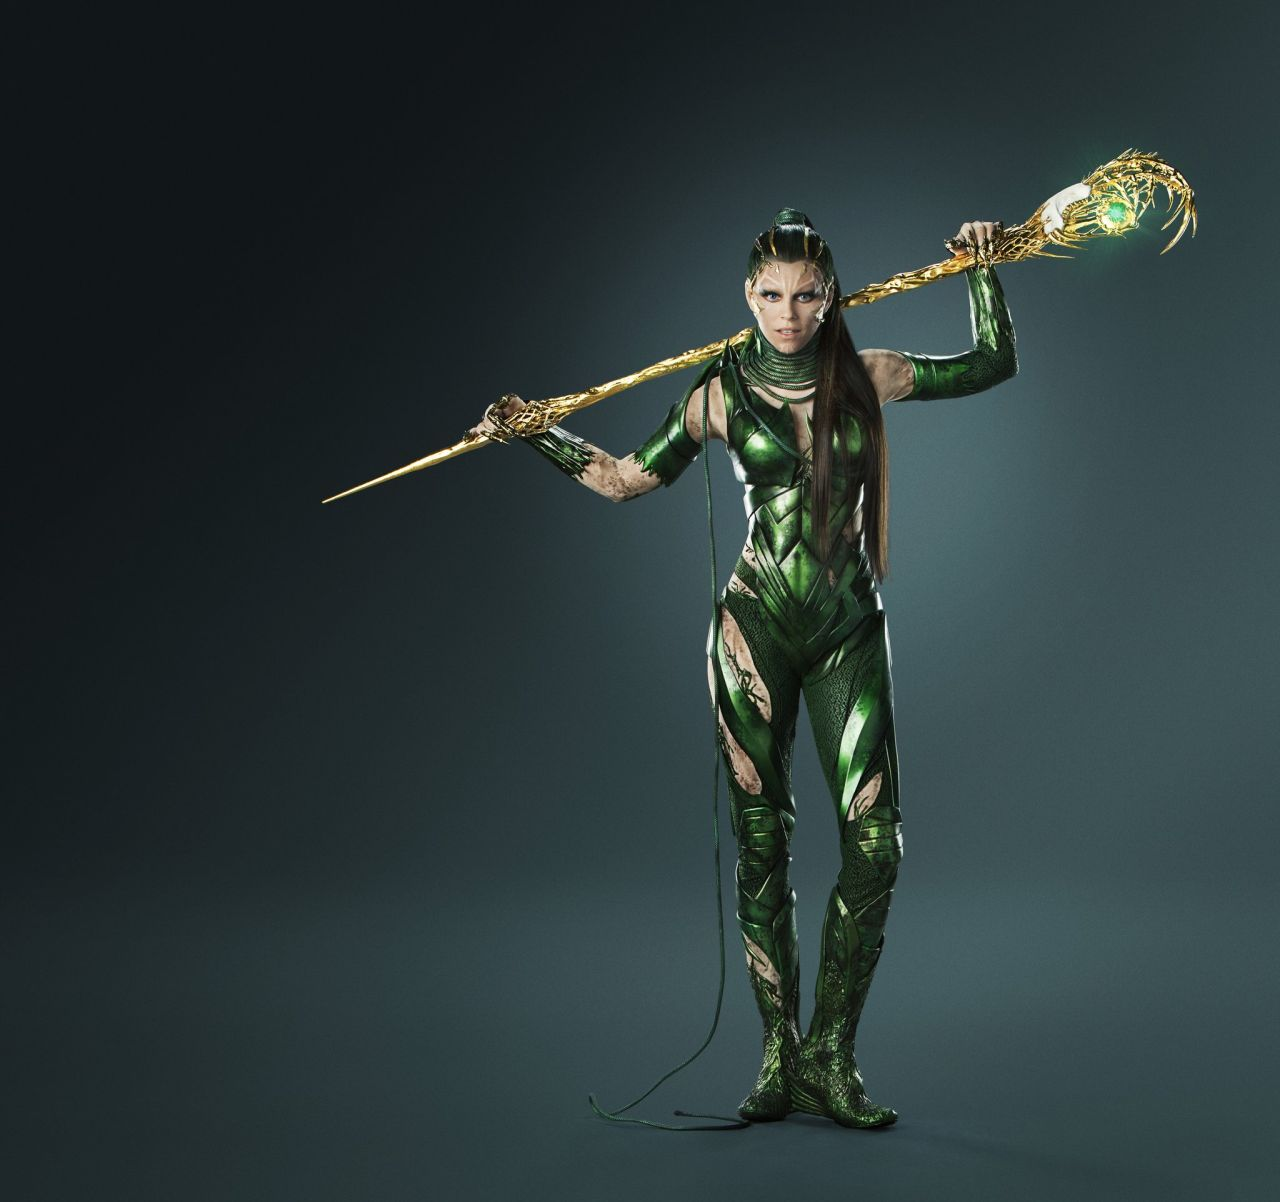 Elizabeth Banks as Rita Repulsa in 'Power Rangers'